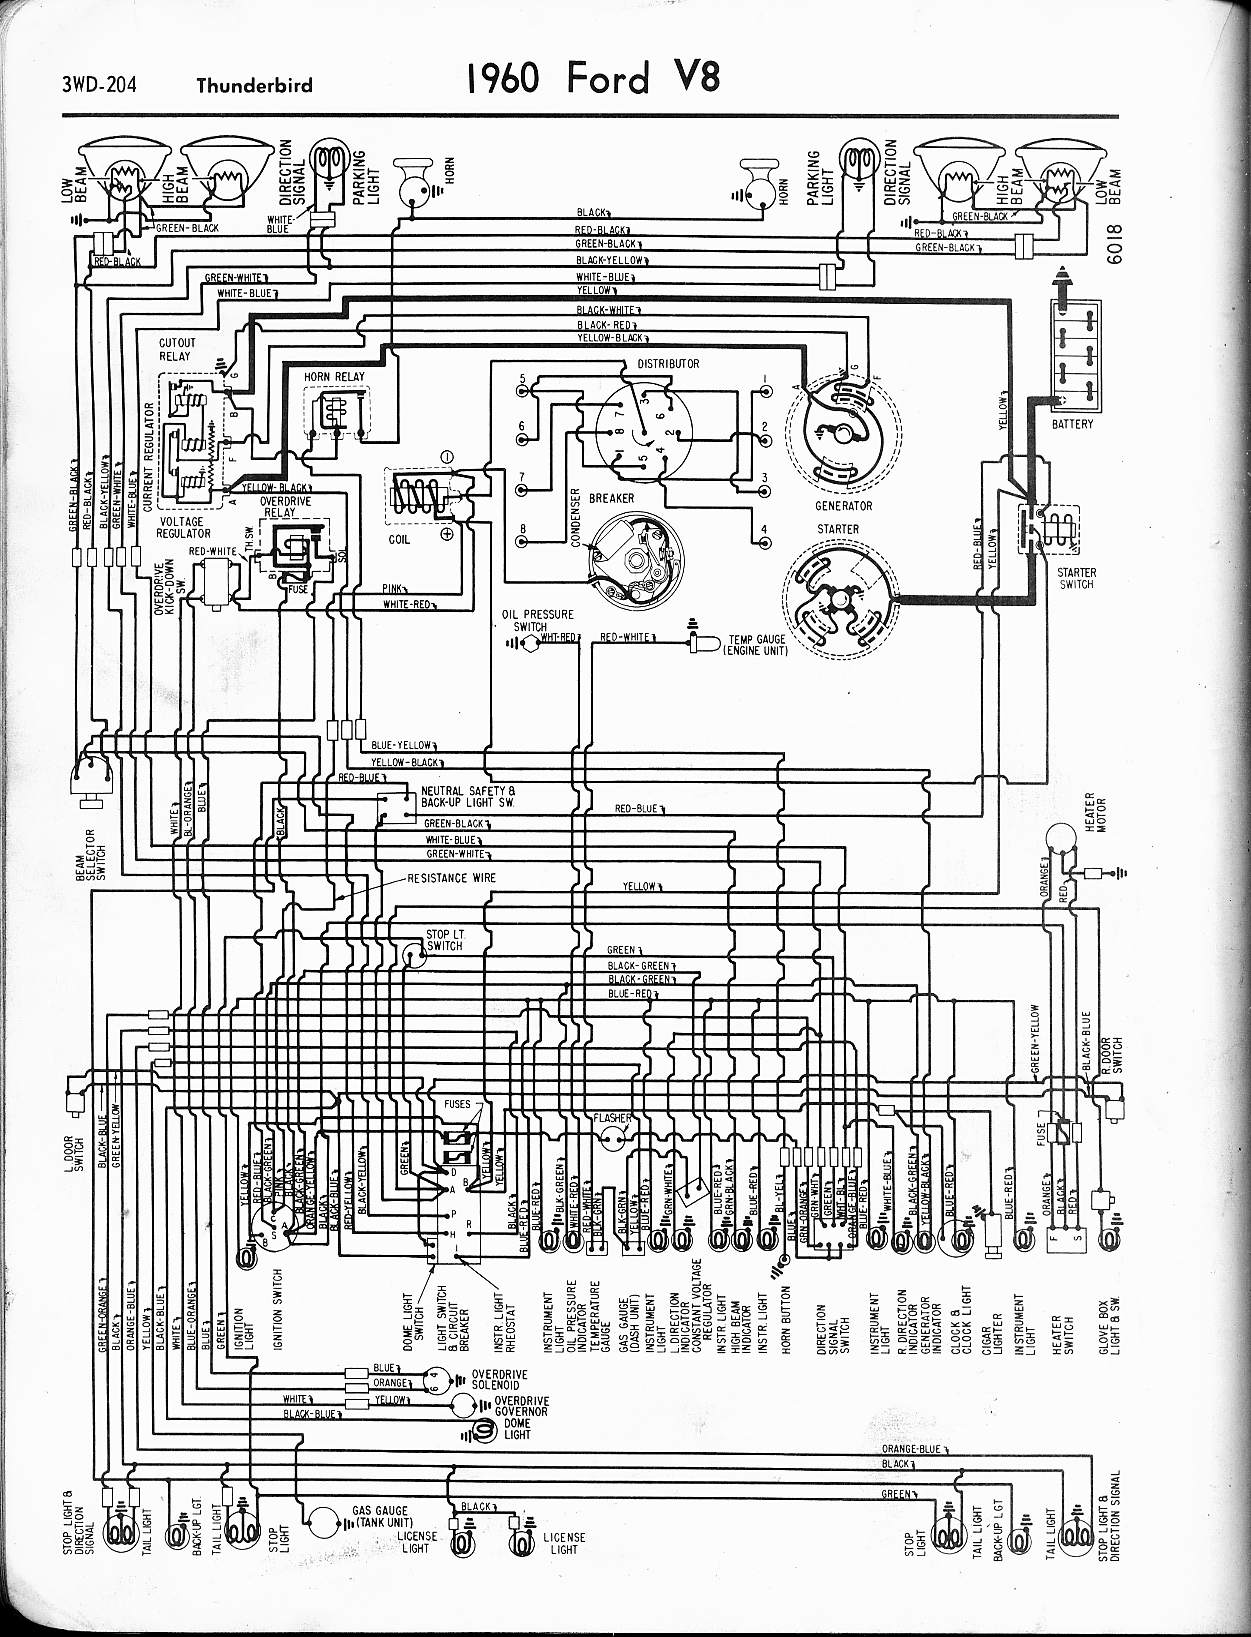 1961 chevy wagon wiring diagram opinions about wiring diagram \u2022 1966 chevy alternator wiring wagon wiring diagrams wiring schematics diagram rh mychampagnedaze com 1965 chevy wagon 1971 chevy wagon